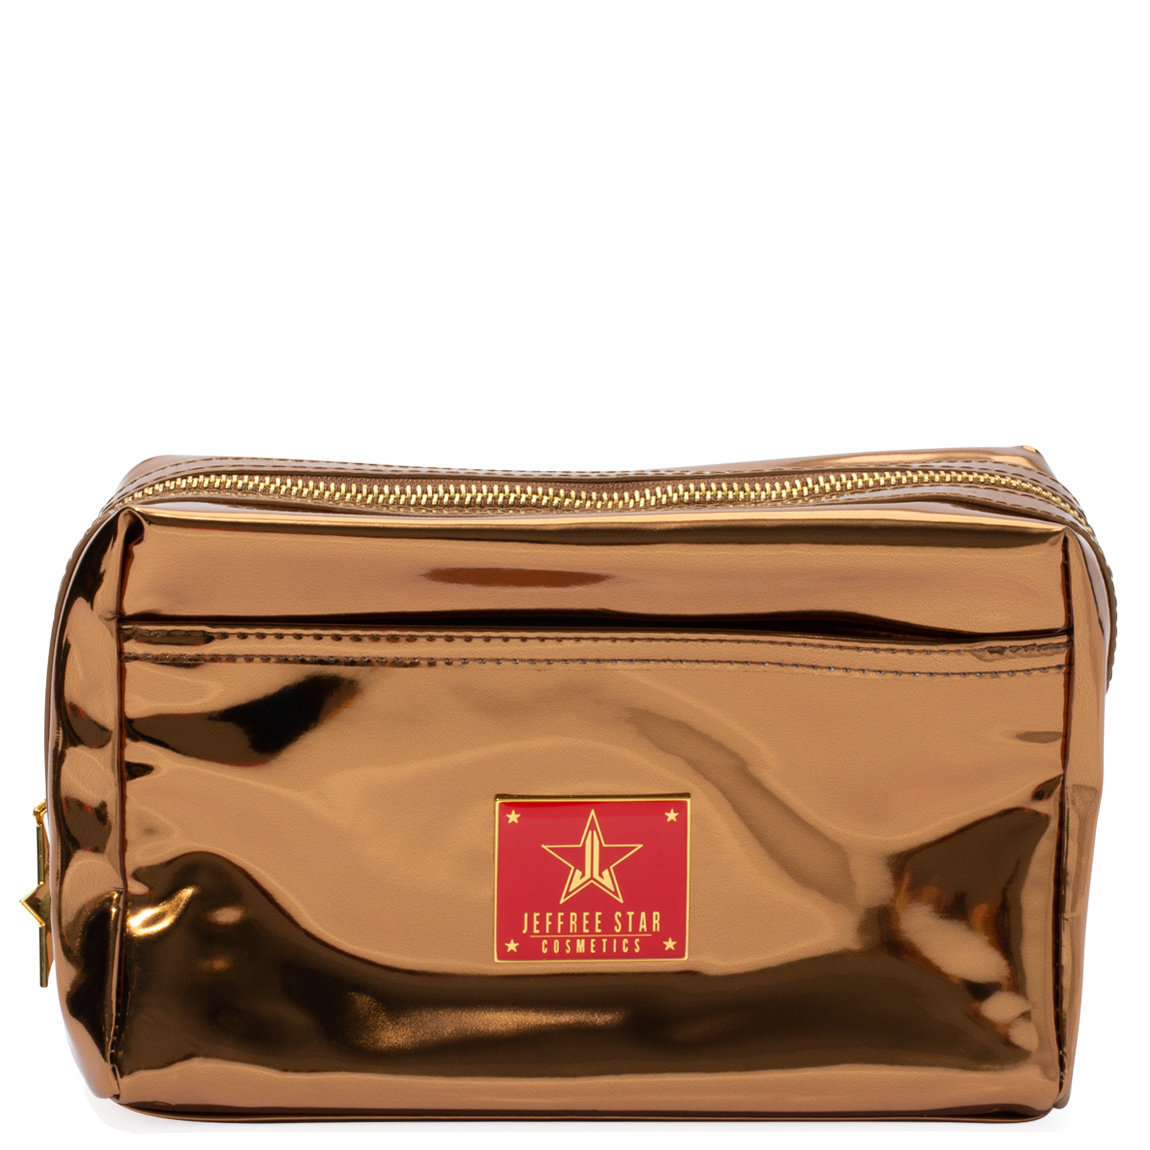 Jeffree Star Cosmetics Reflective Makeup Bag Copper